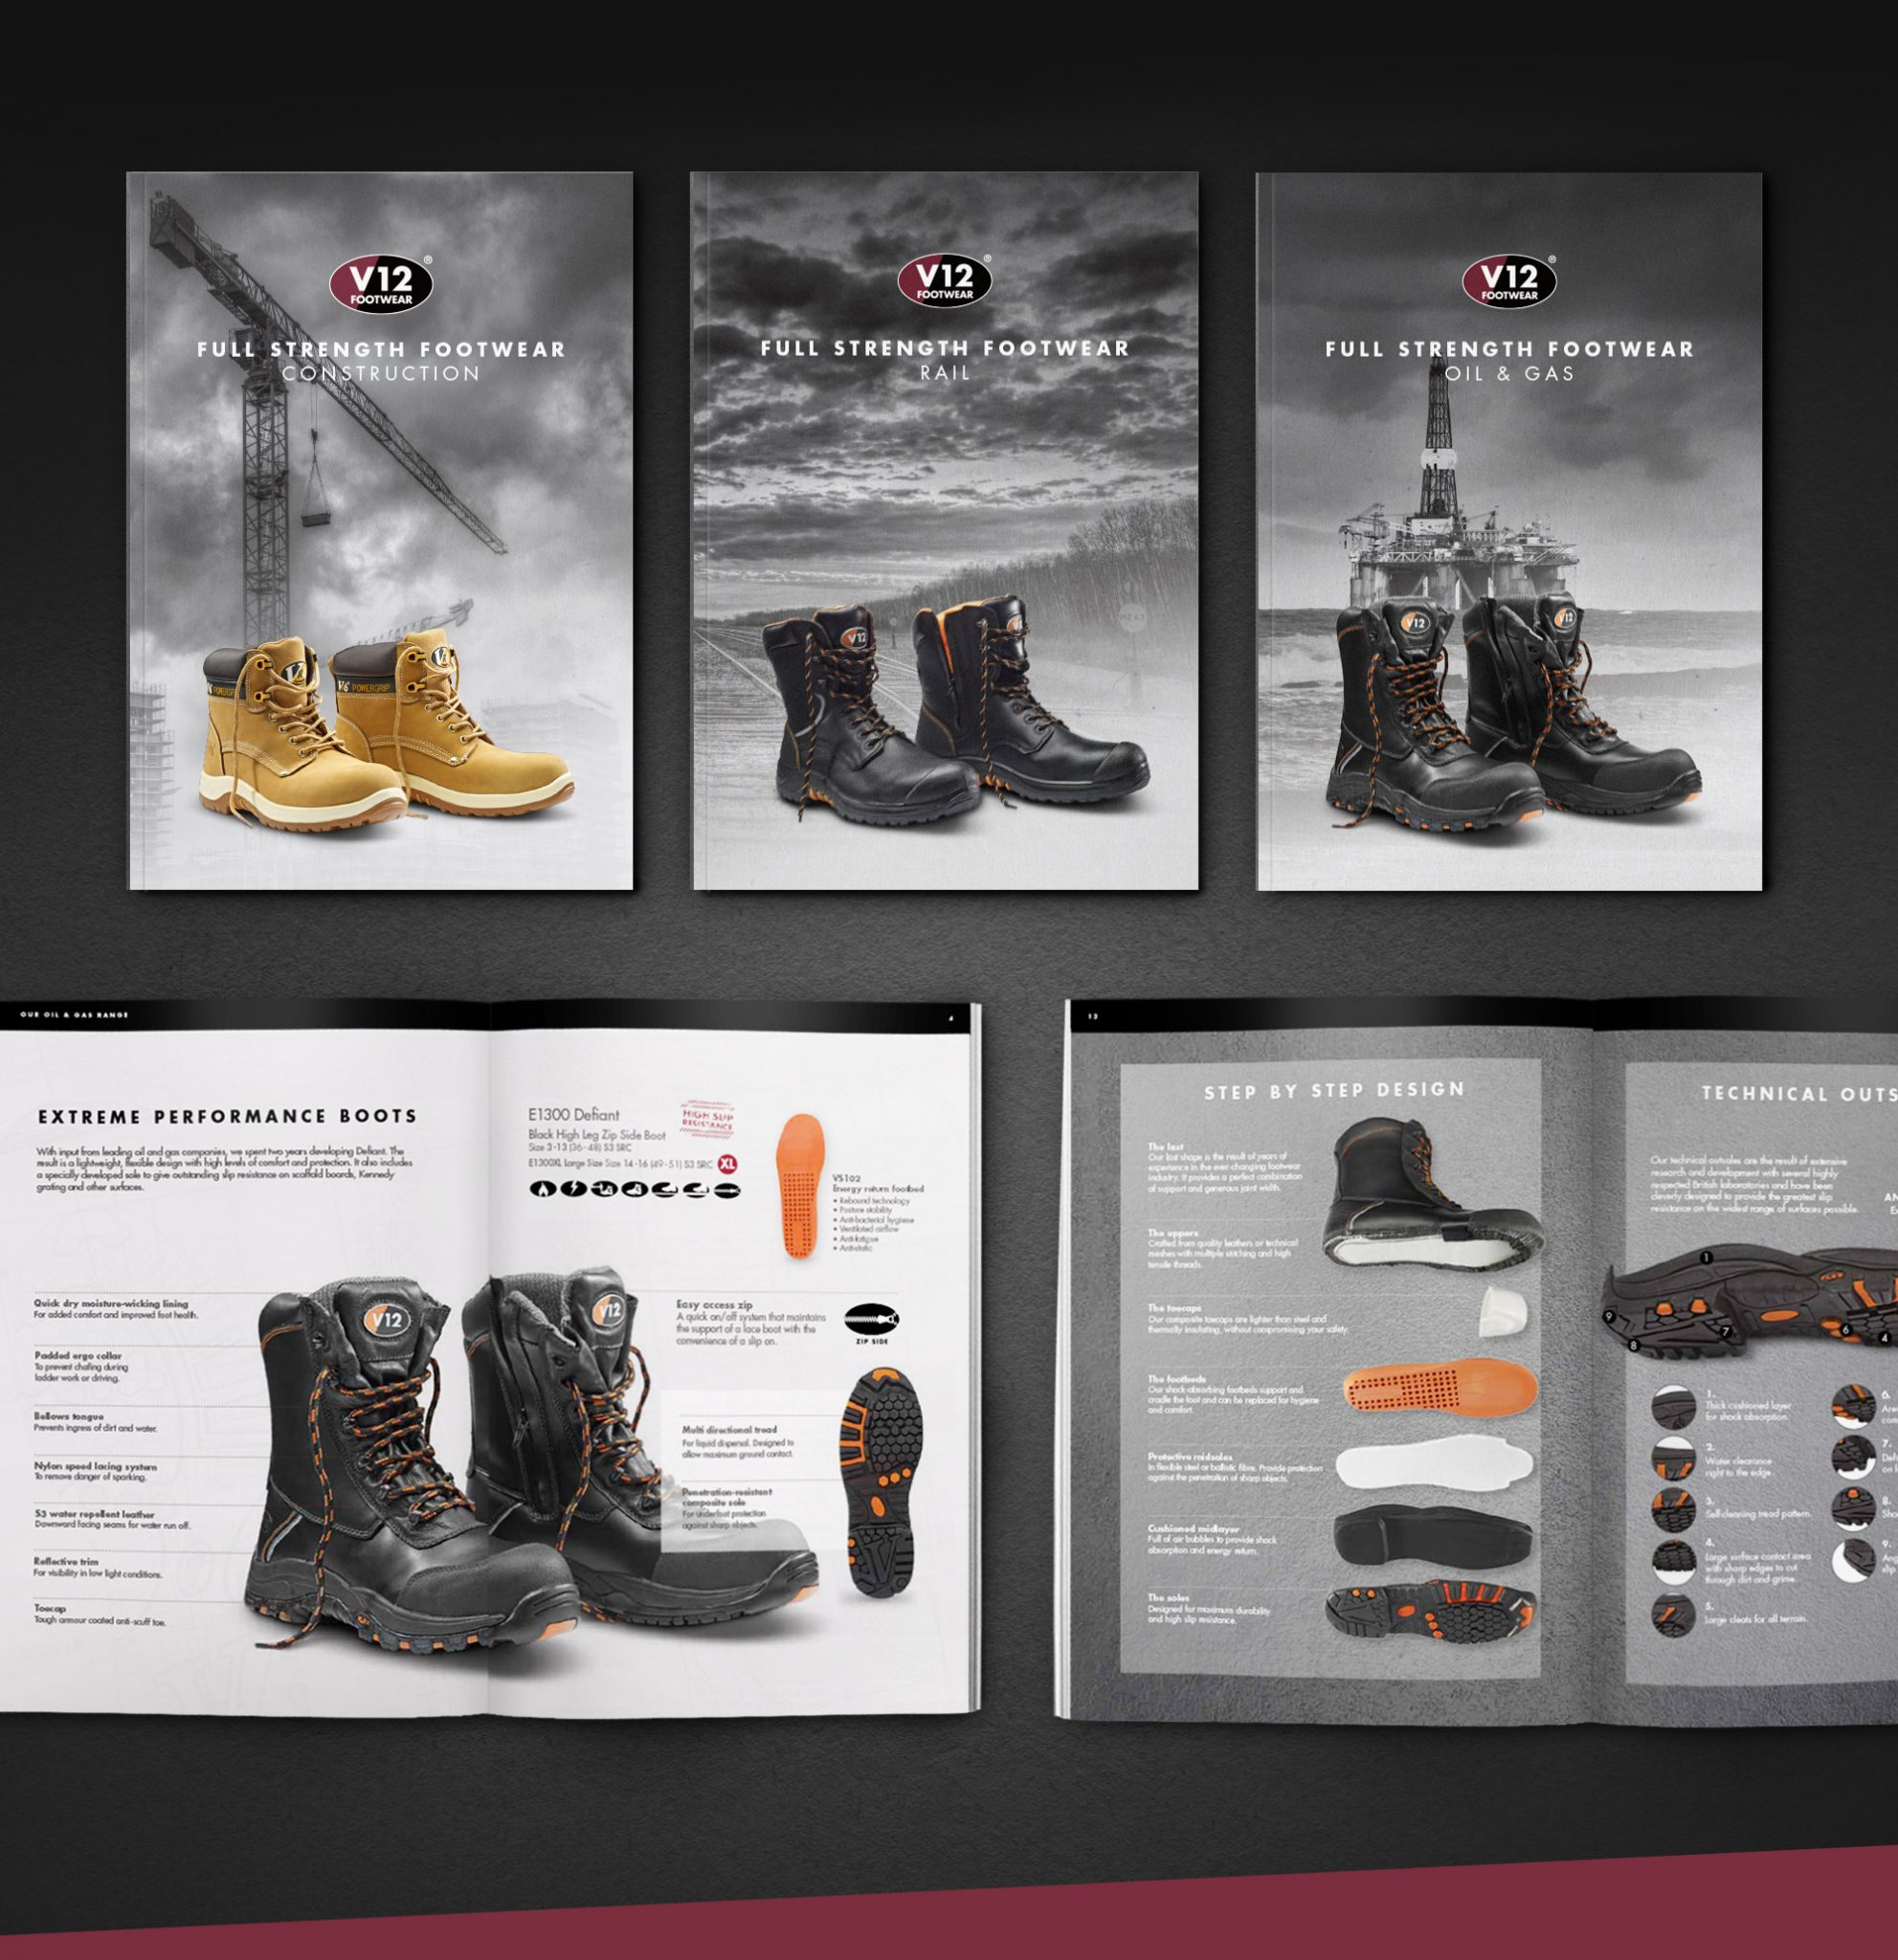 V12 Footwear Catalogue Covers and Spread Design